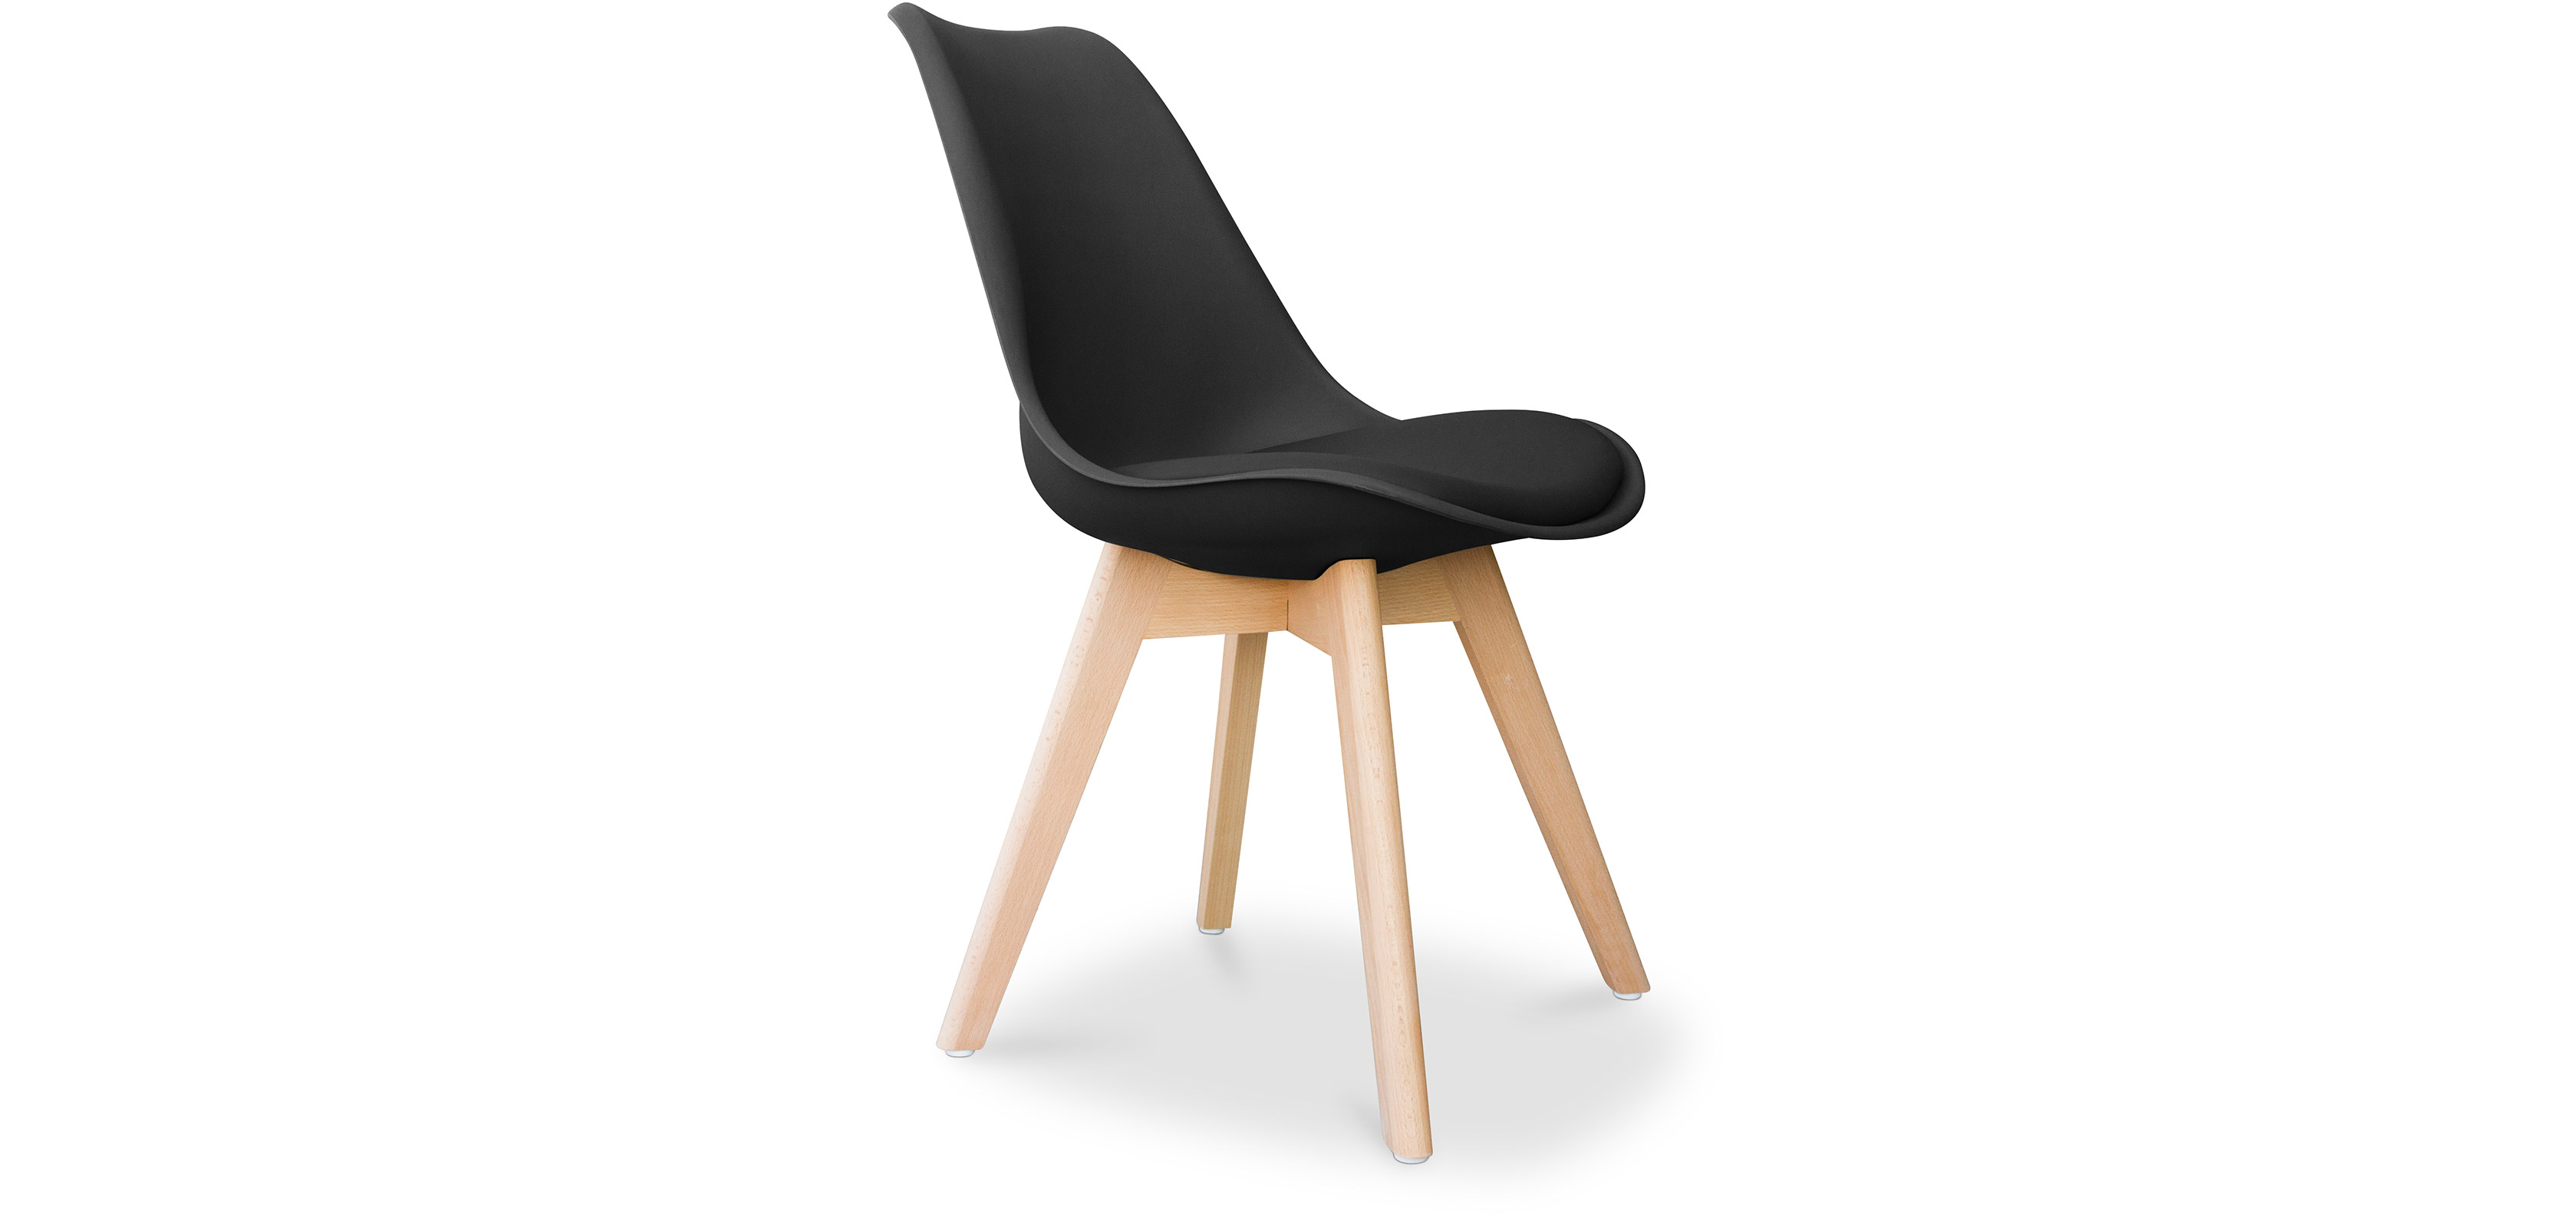 chaise dsw avec coussin design scandinave charles eames. Black Bedroom Furniture Sets. Home Design Ideas